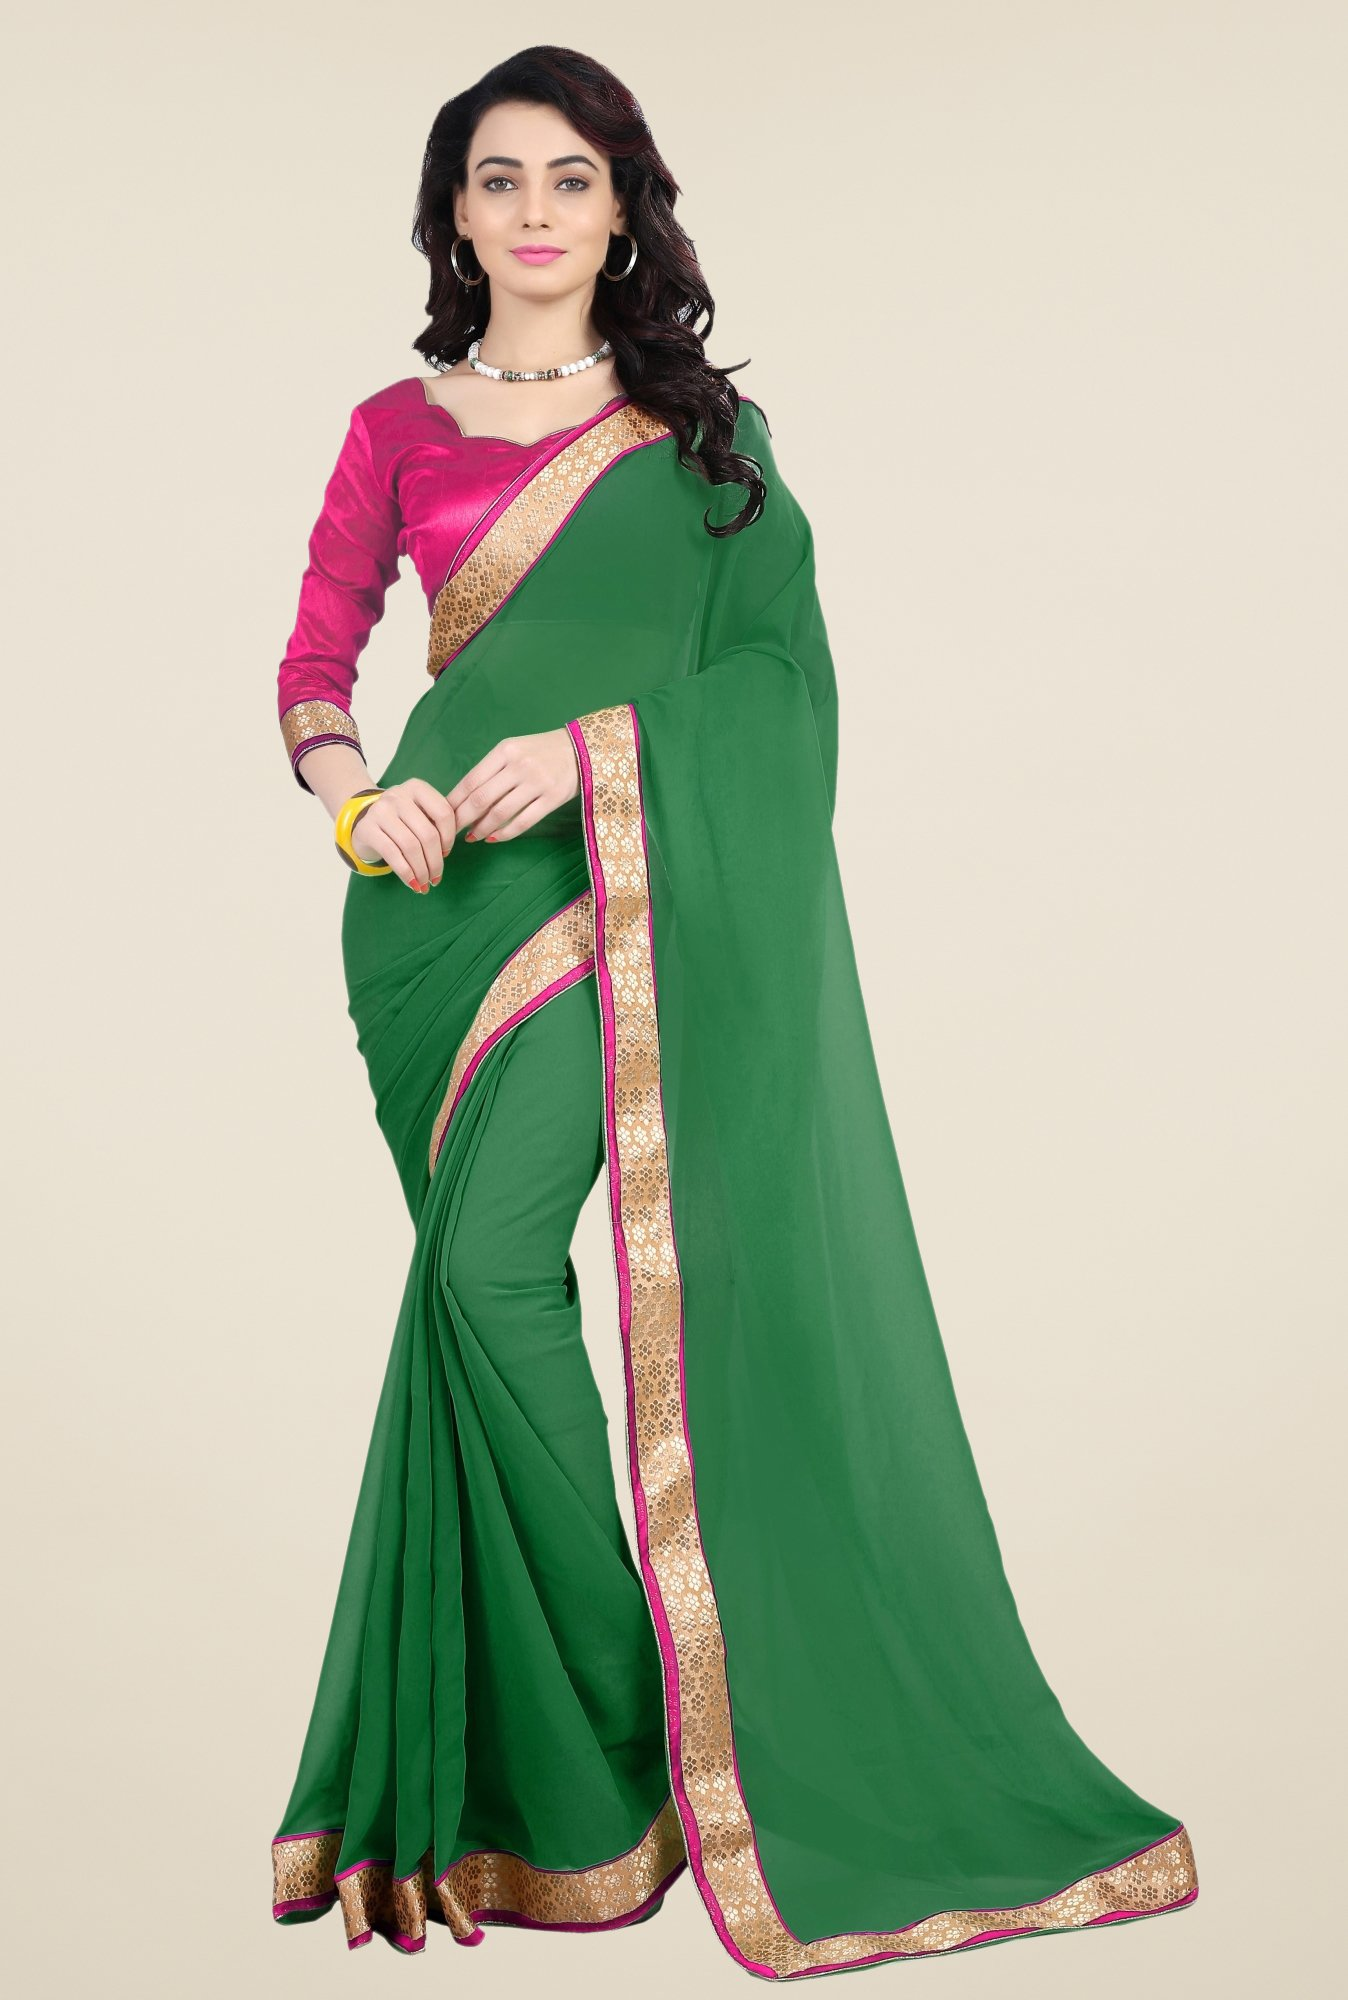 Triveni Green Faux Georgette Saree